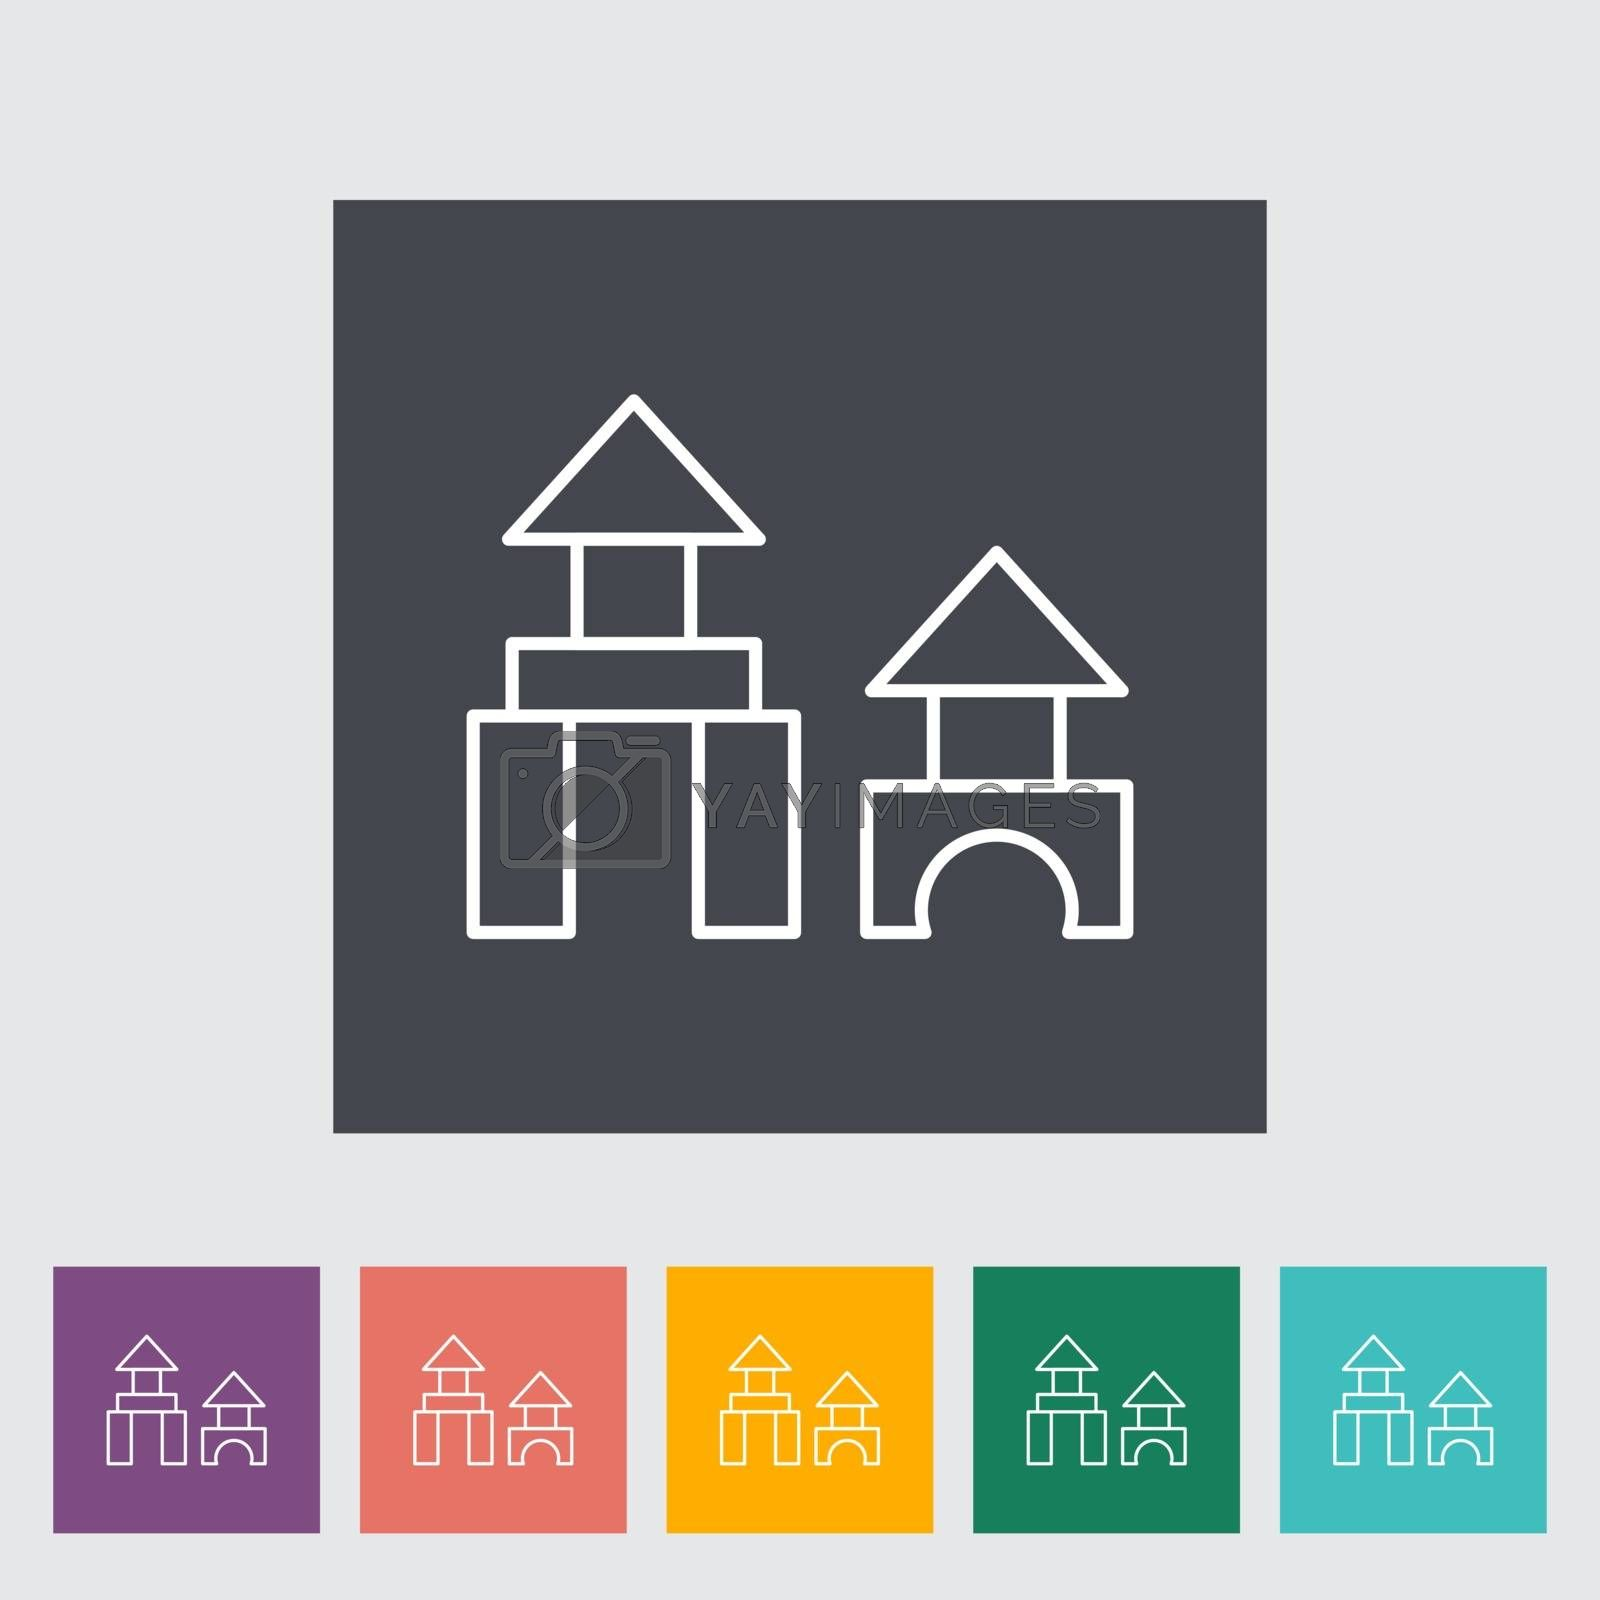 Building block thin line flat vector related icon set for web and mobile applications. It can be used as - pictogram, icon, infographic element. Vector Illustration.